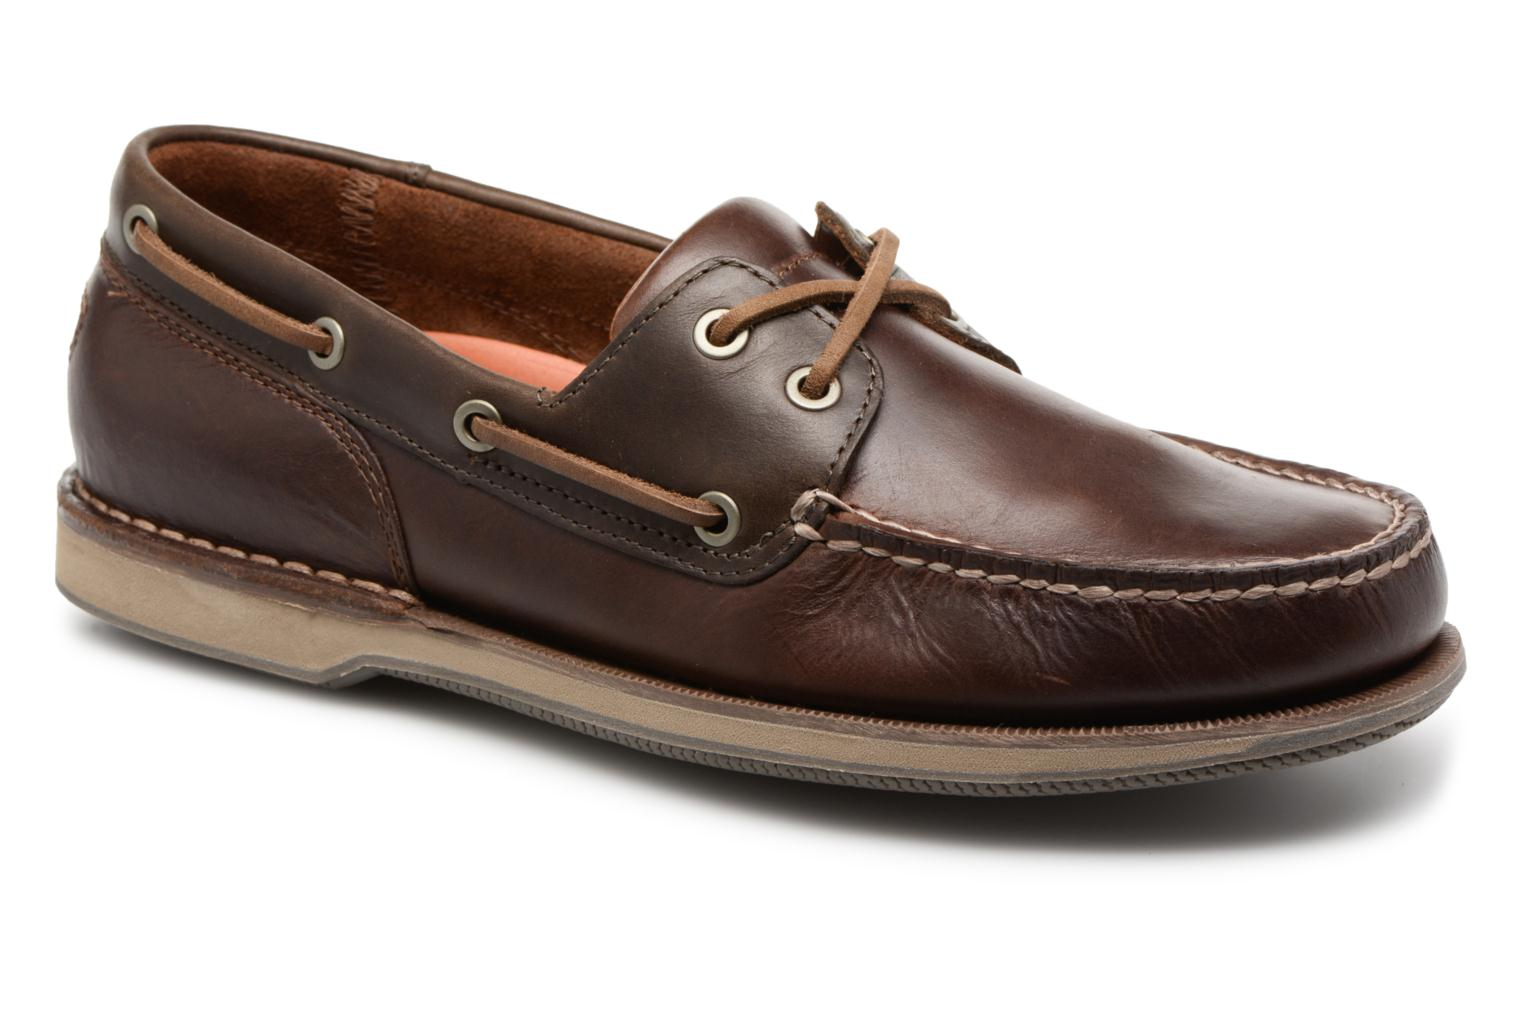 Marques Chaussure homme Rockport homme Perth Beeswax/Dk Brown